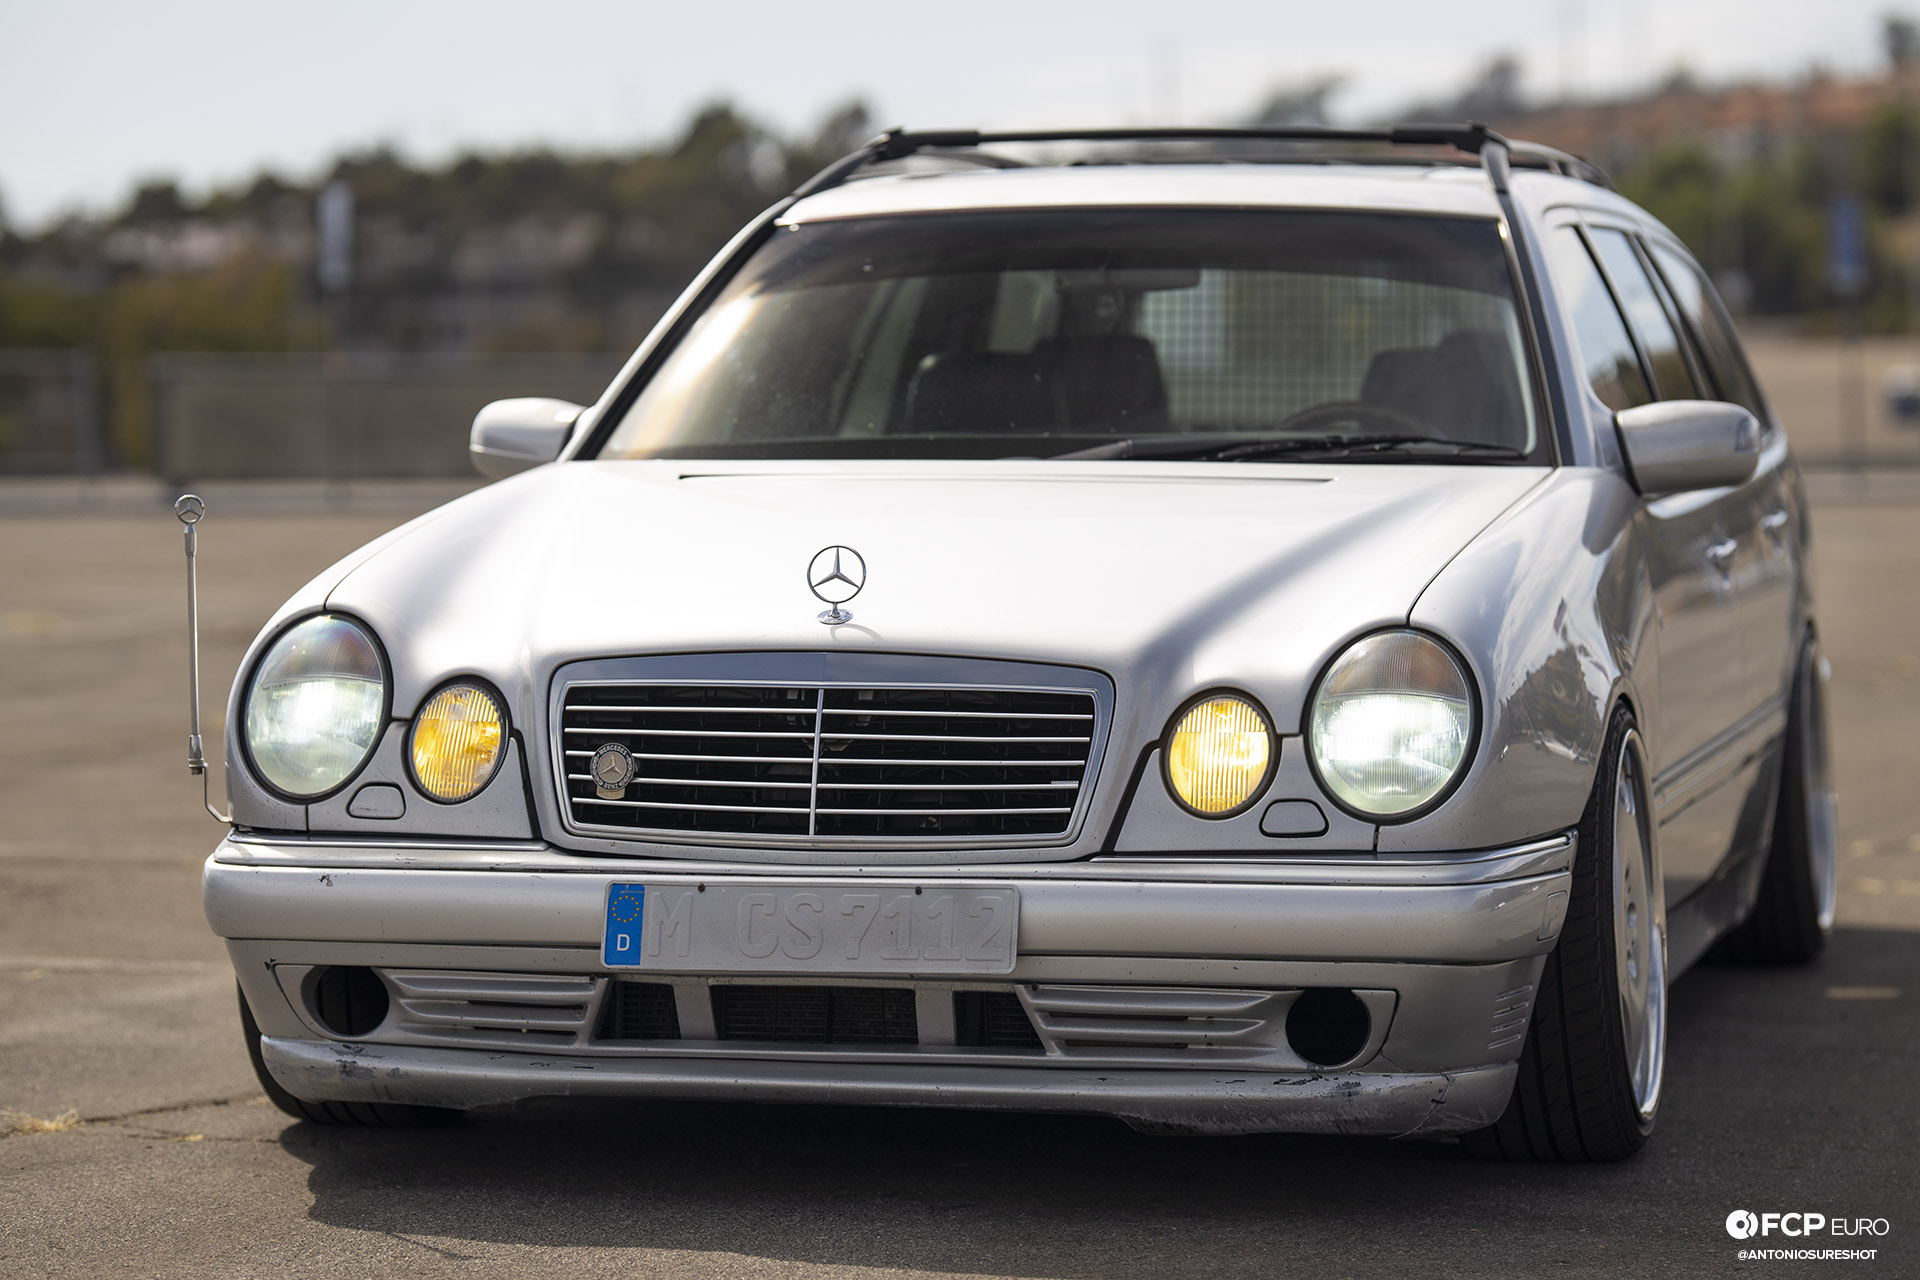 Mercedes Benz AMG E55 swapped E320 wagon 1920wm EOSR2624